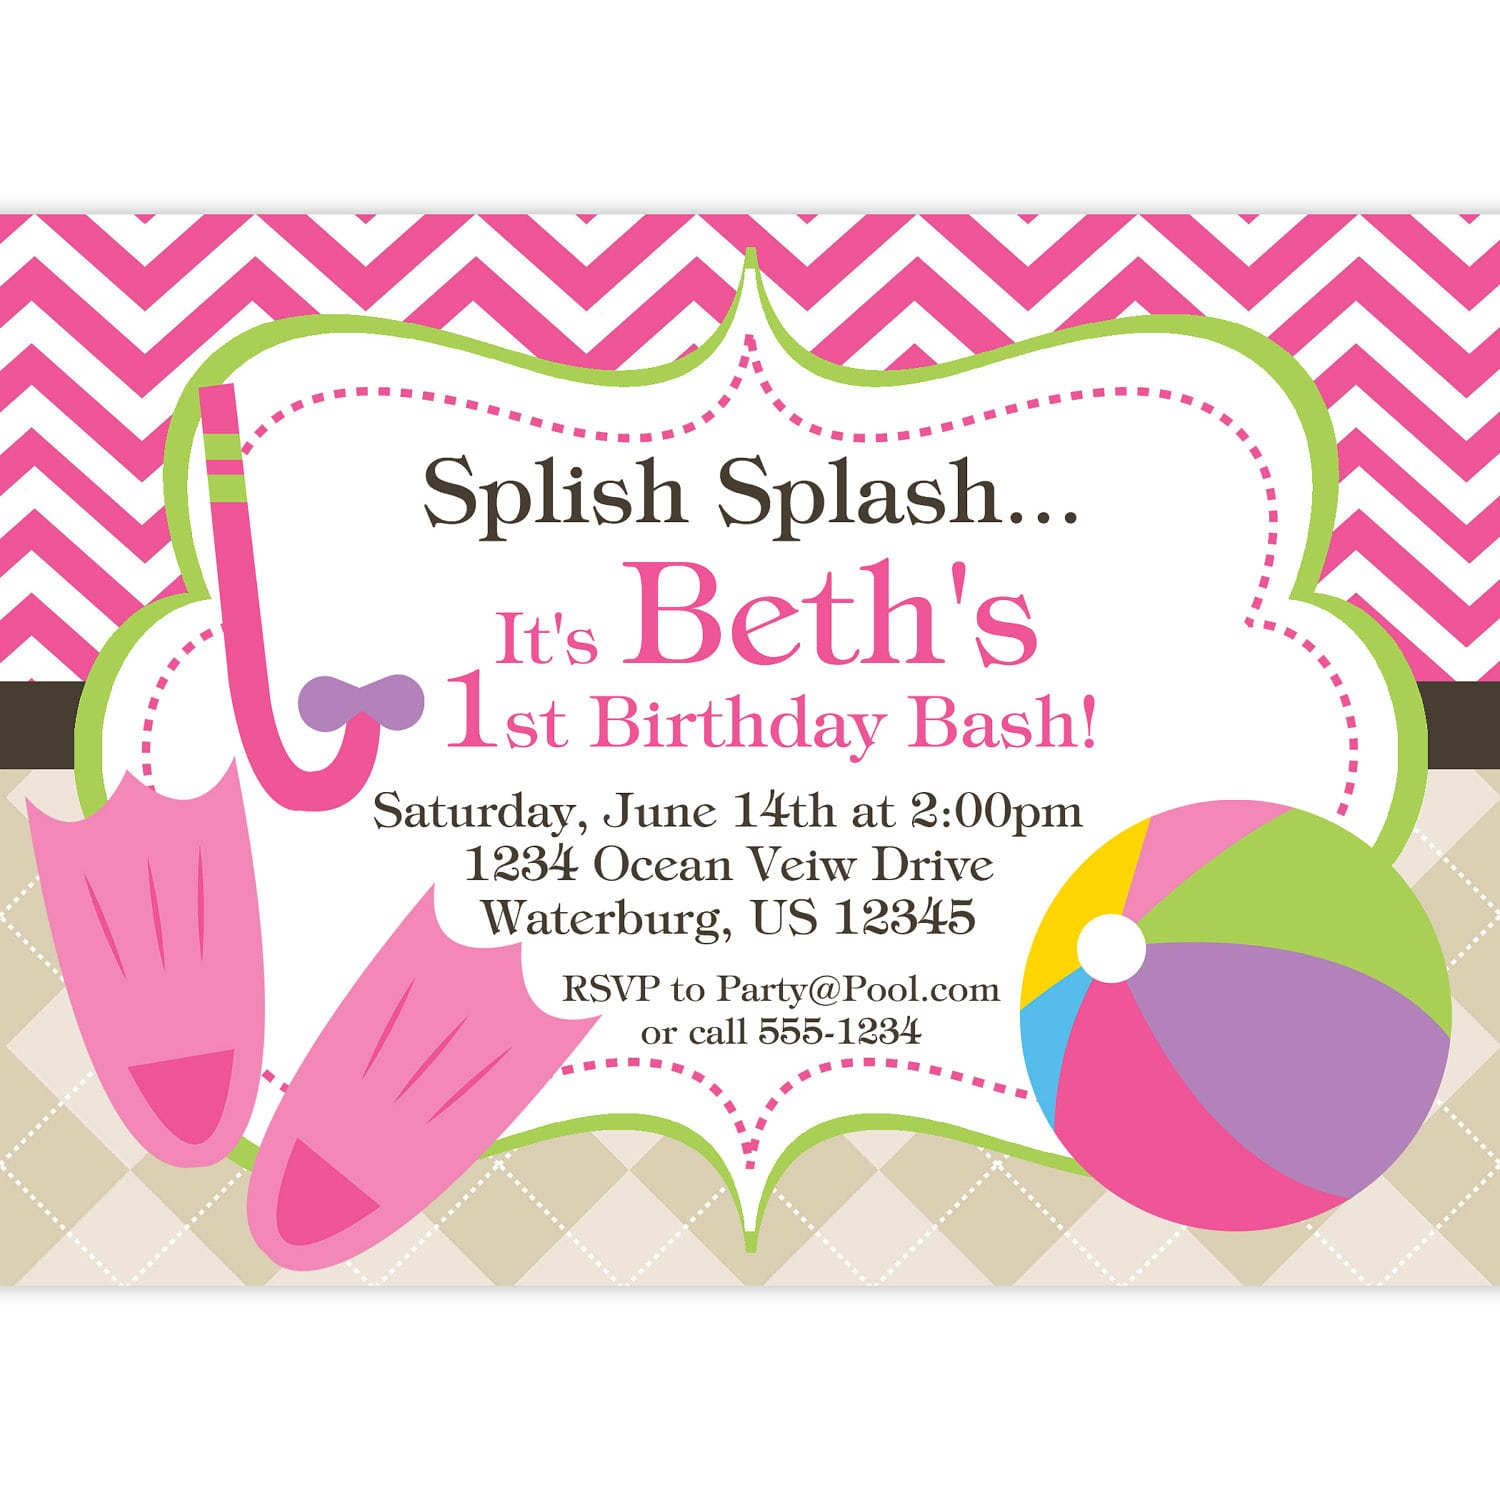 Child pool party invitation template free for Pool party invitations templates free